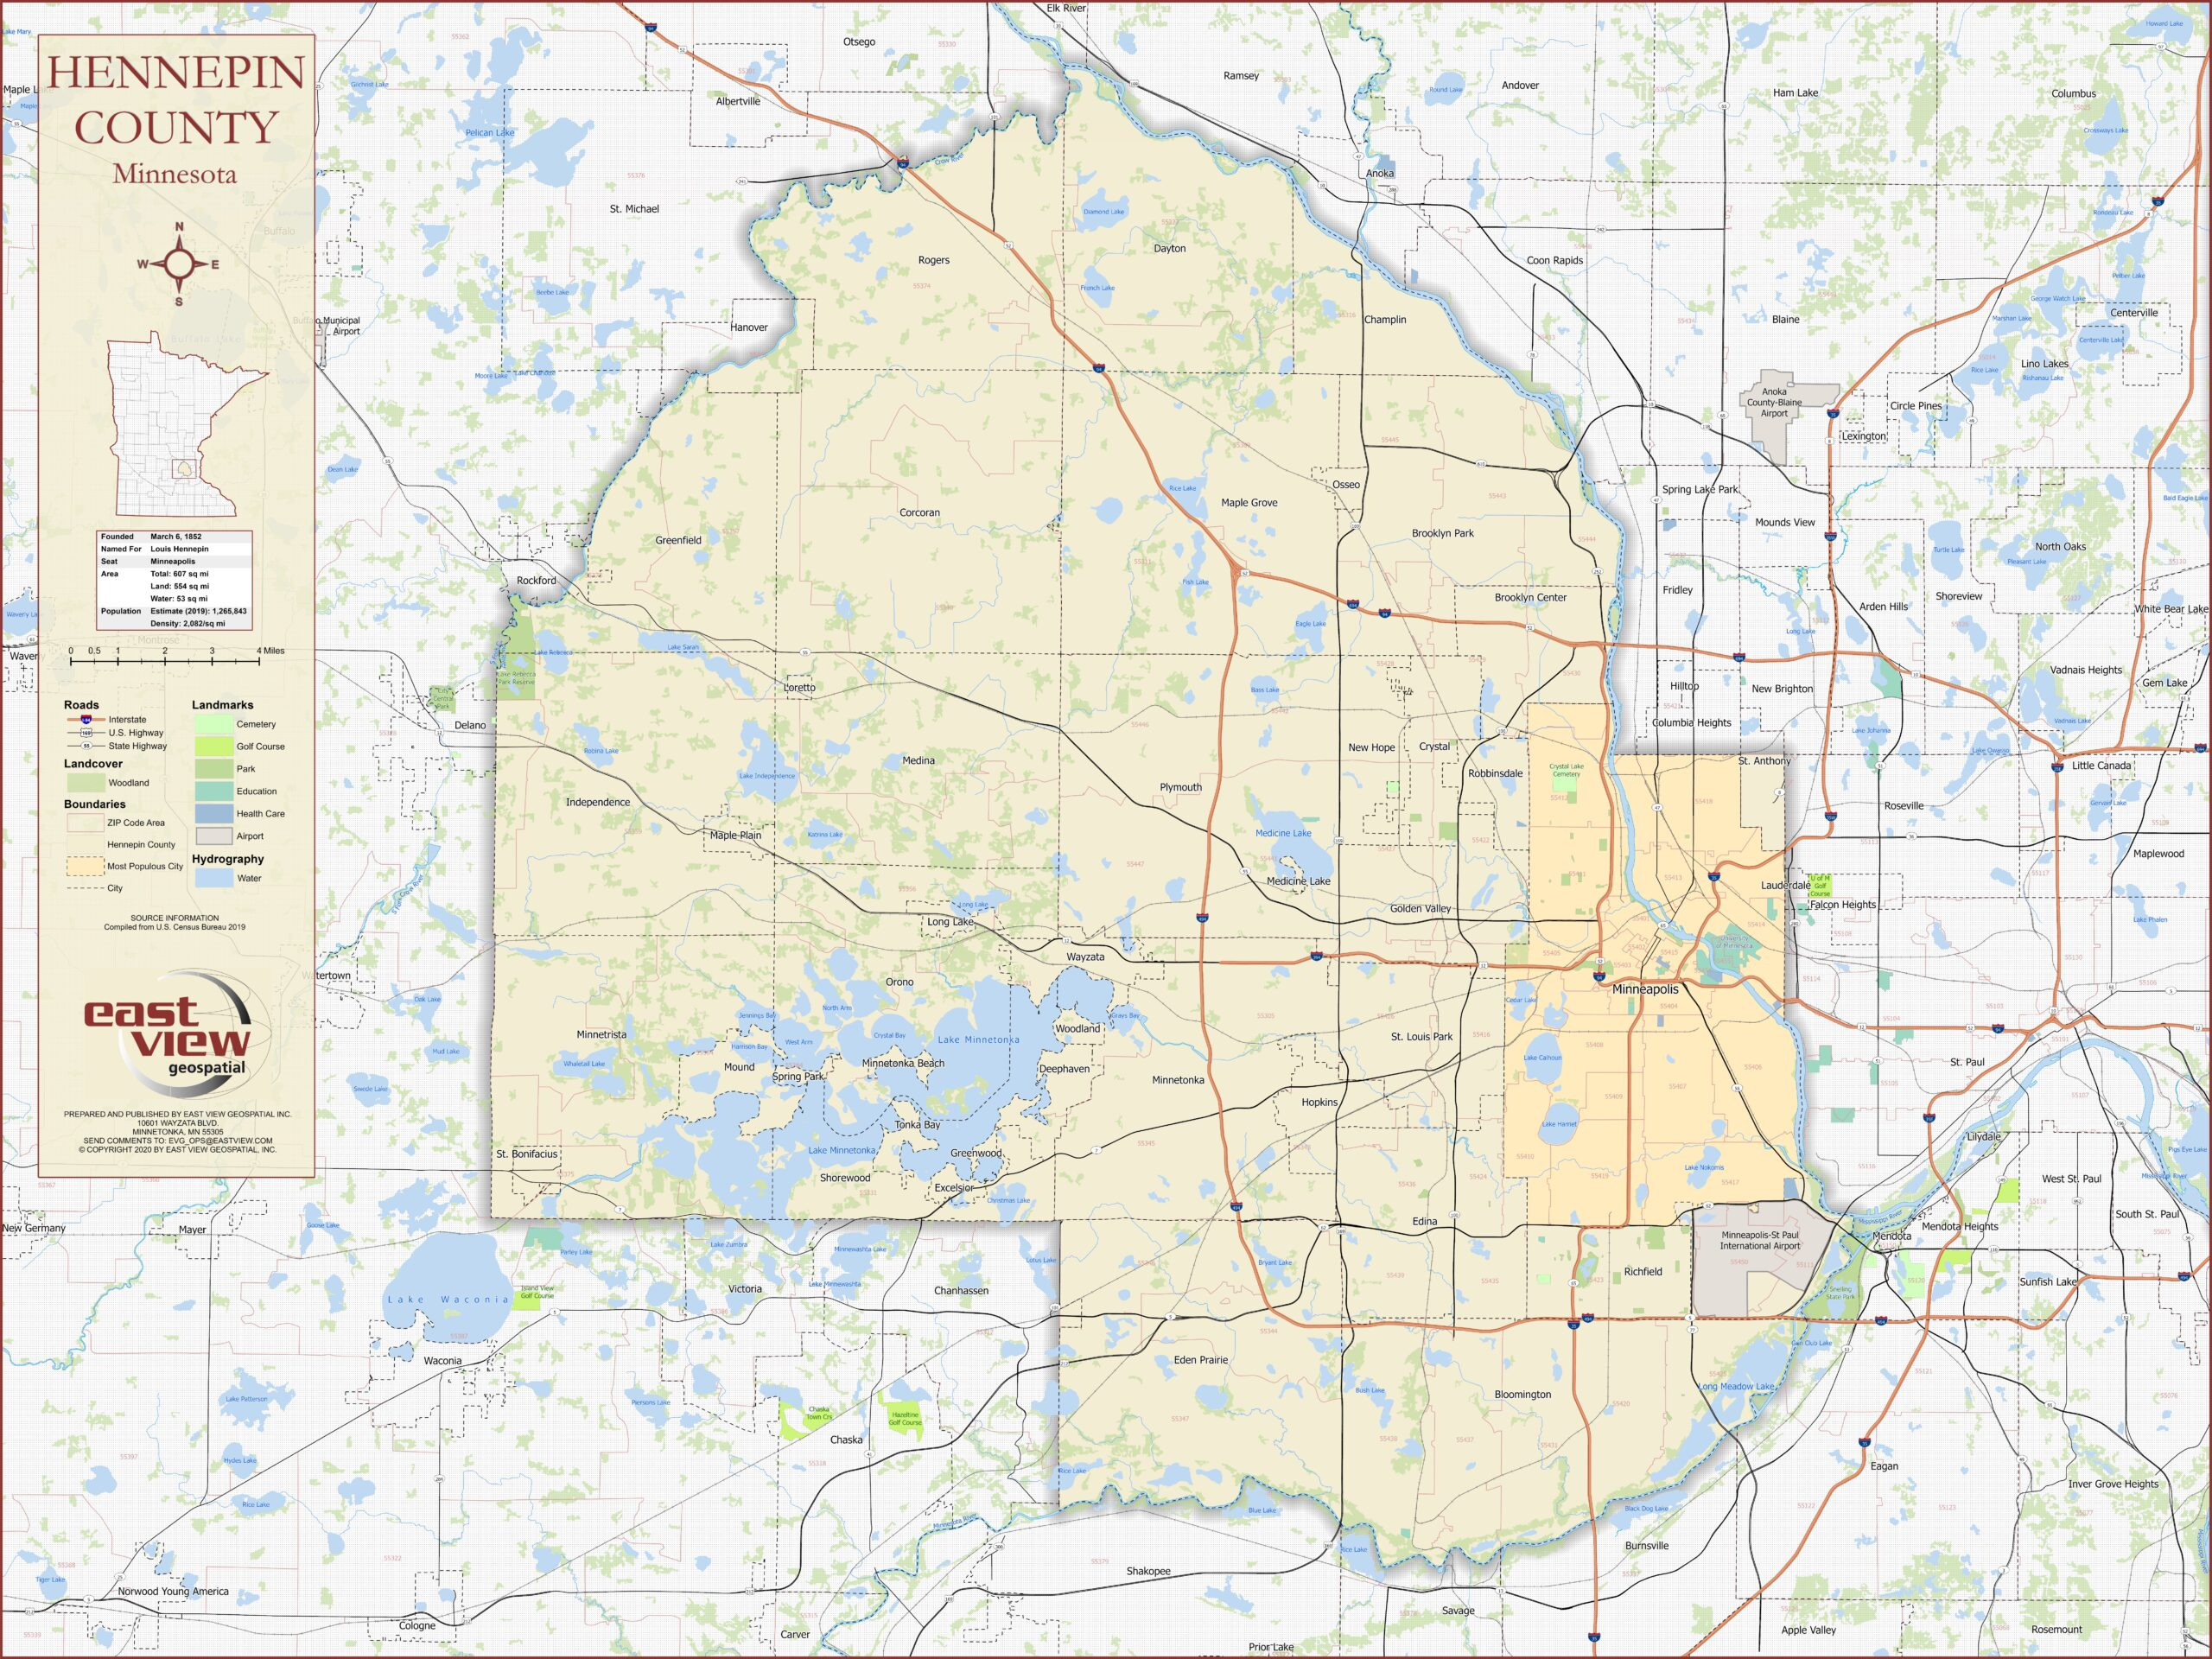 Custom produced map of Hennepin County, Minnesota